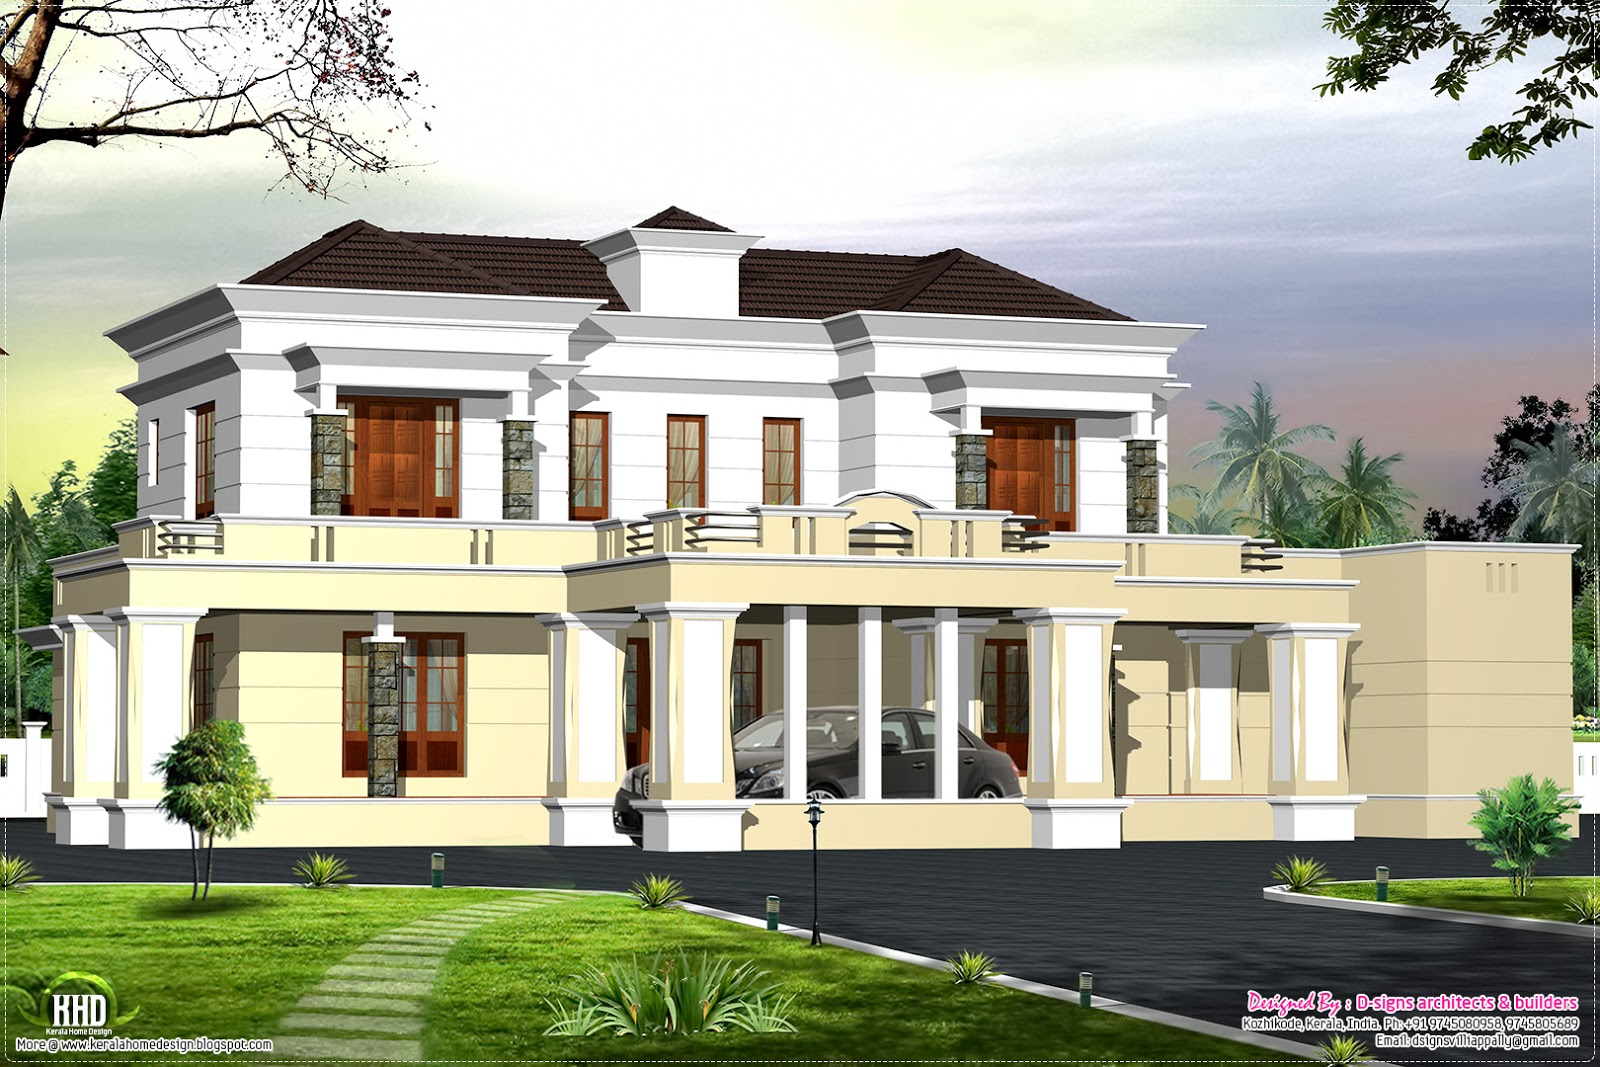 Victorian style luxury home design house design plans for Luxury home models